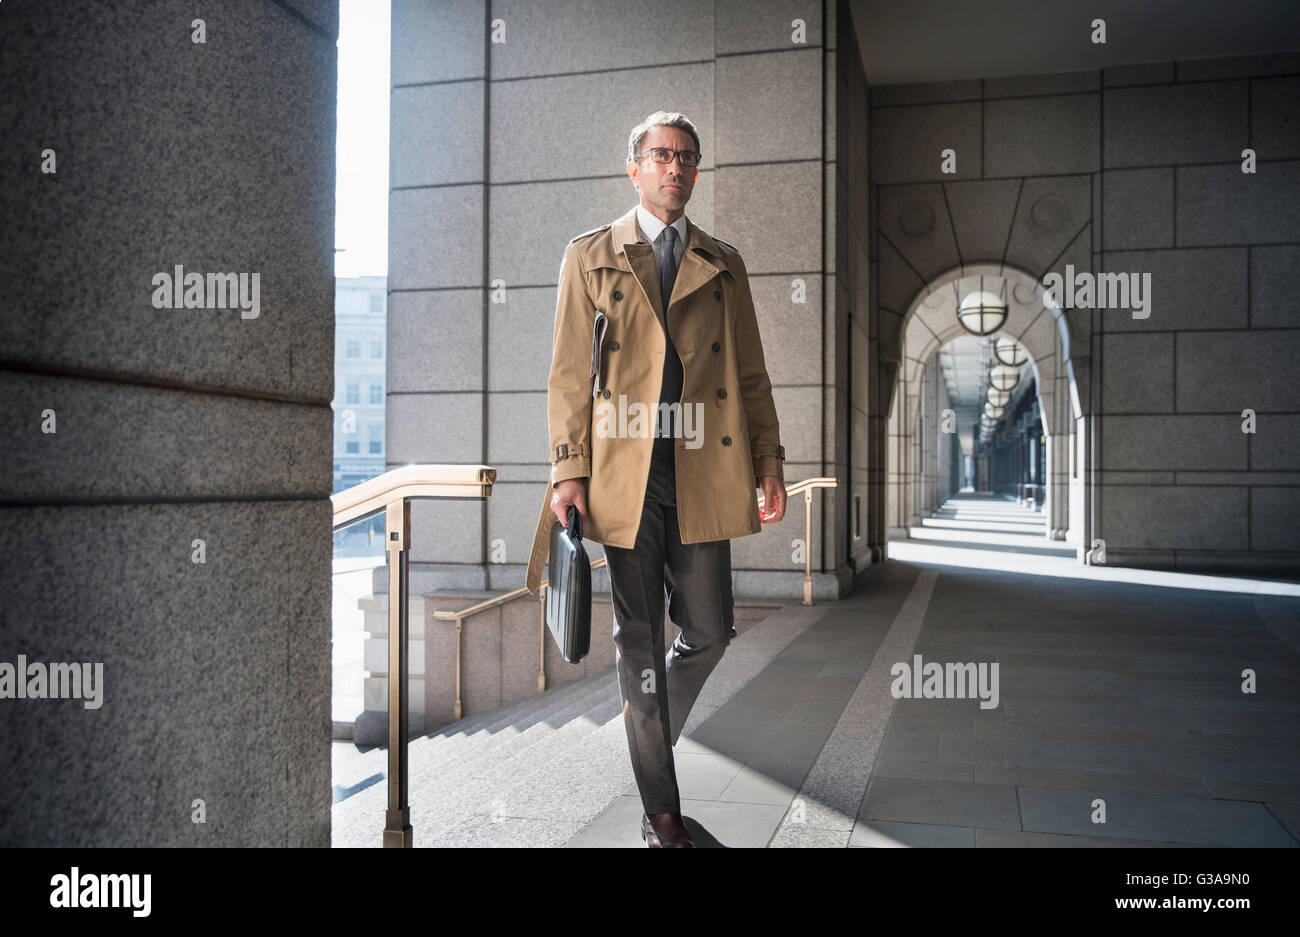 Corporate businessman in trench coat walking in cloister - Stock Image